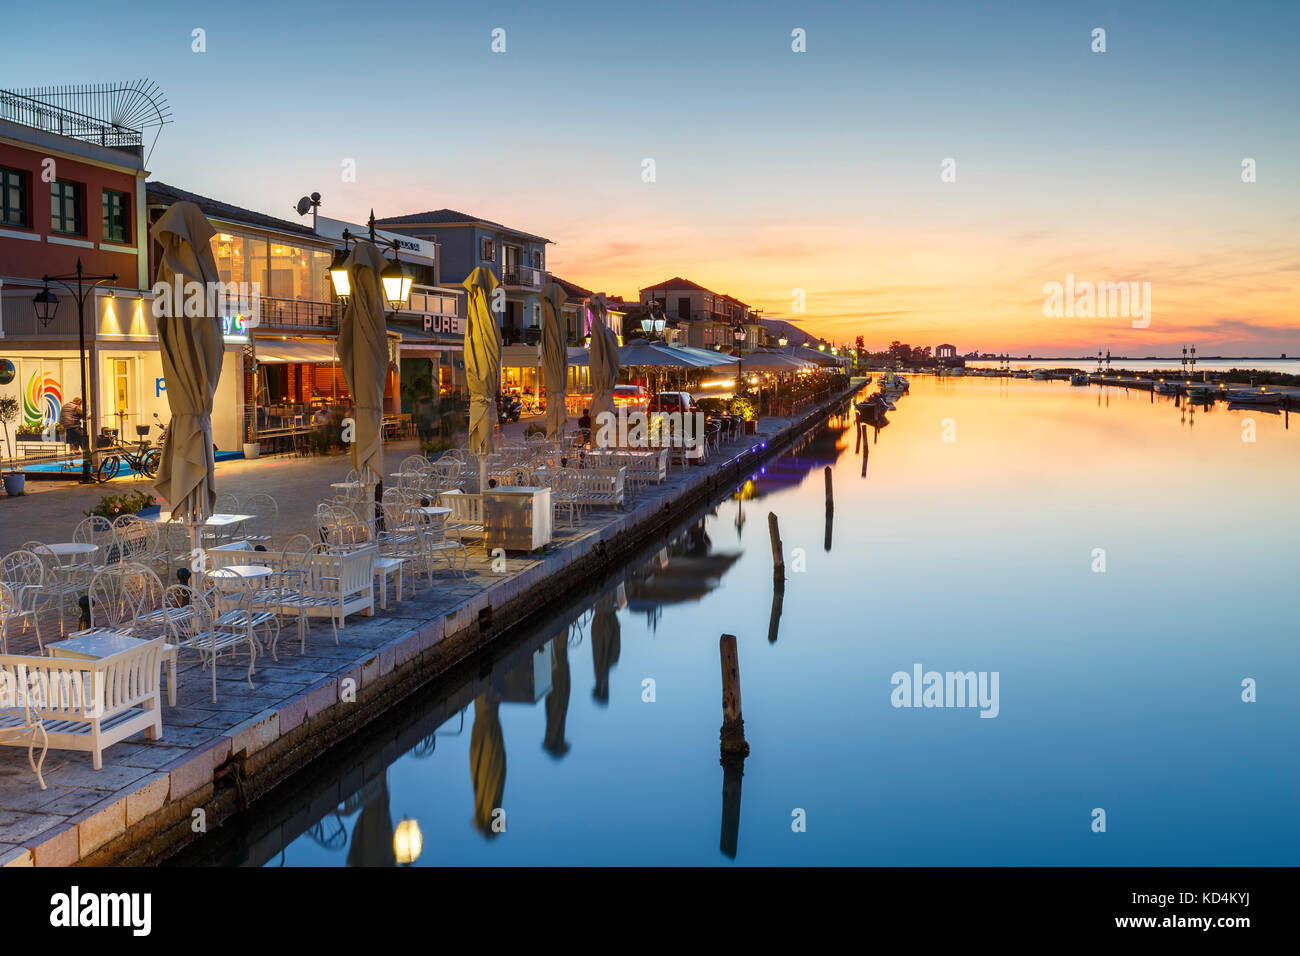 Coffee shops and restaurants in the harbour of Lefkada town, Greece. - Stock Image